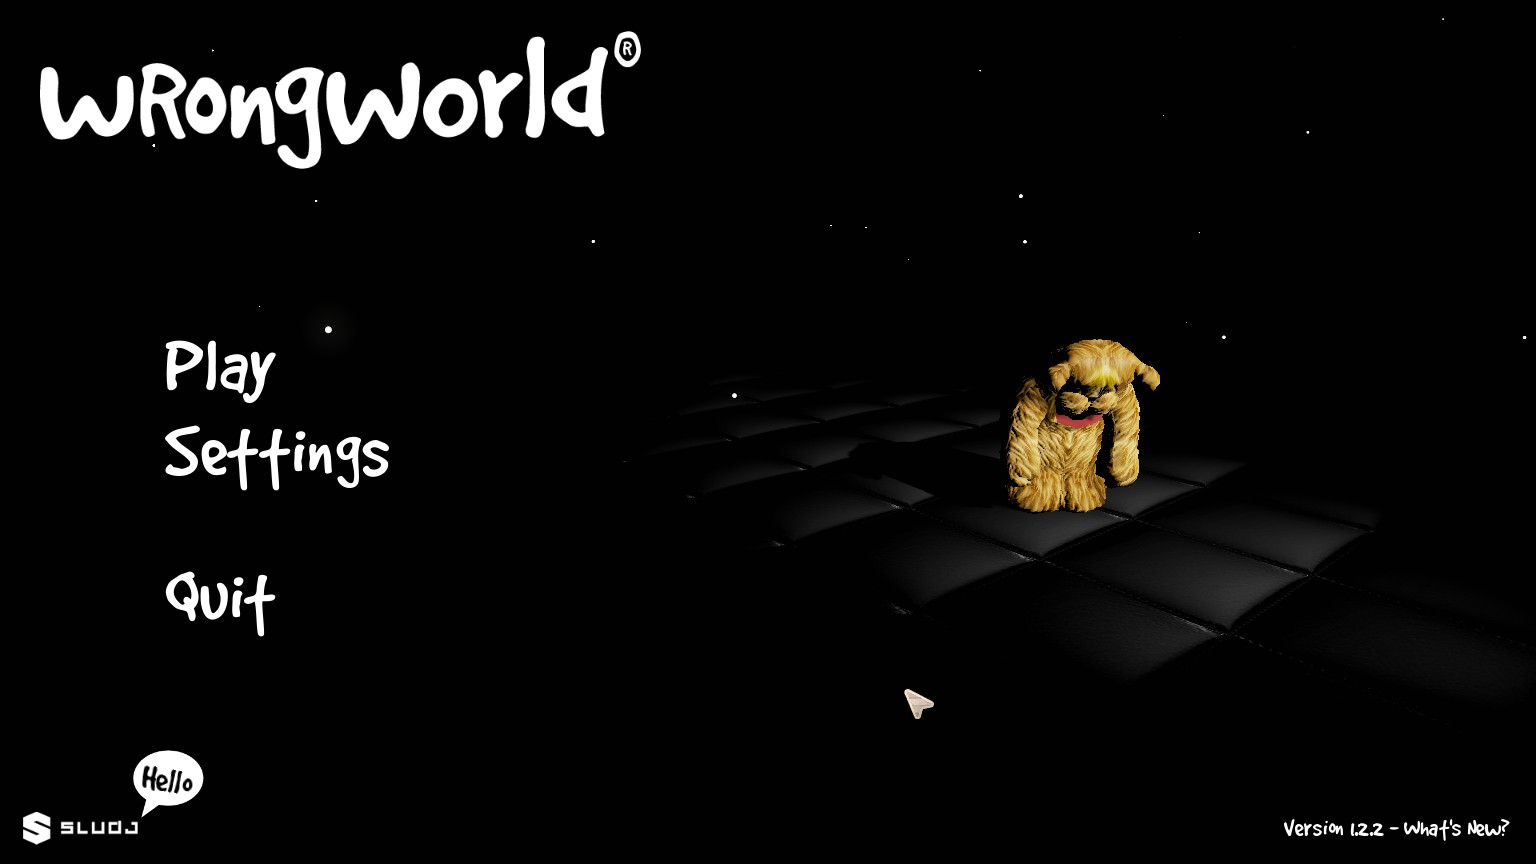 Wrongworld…